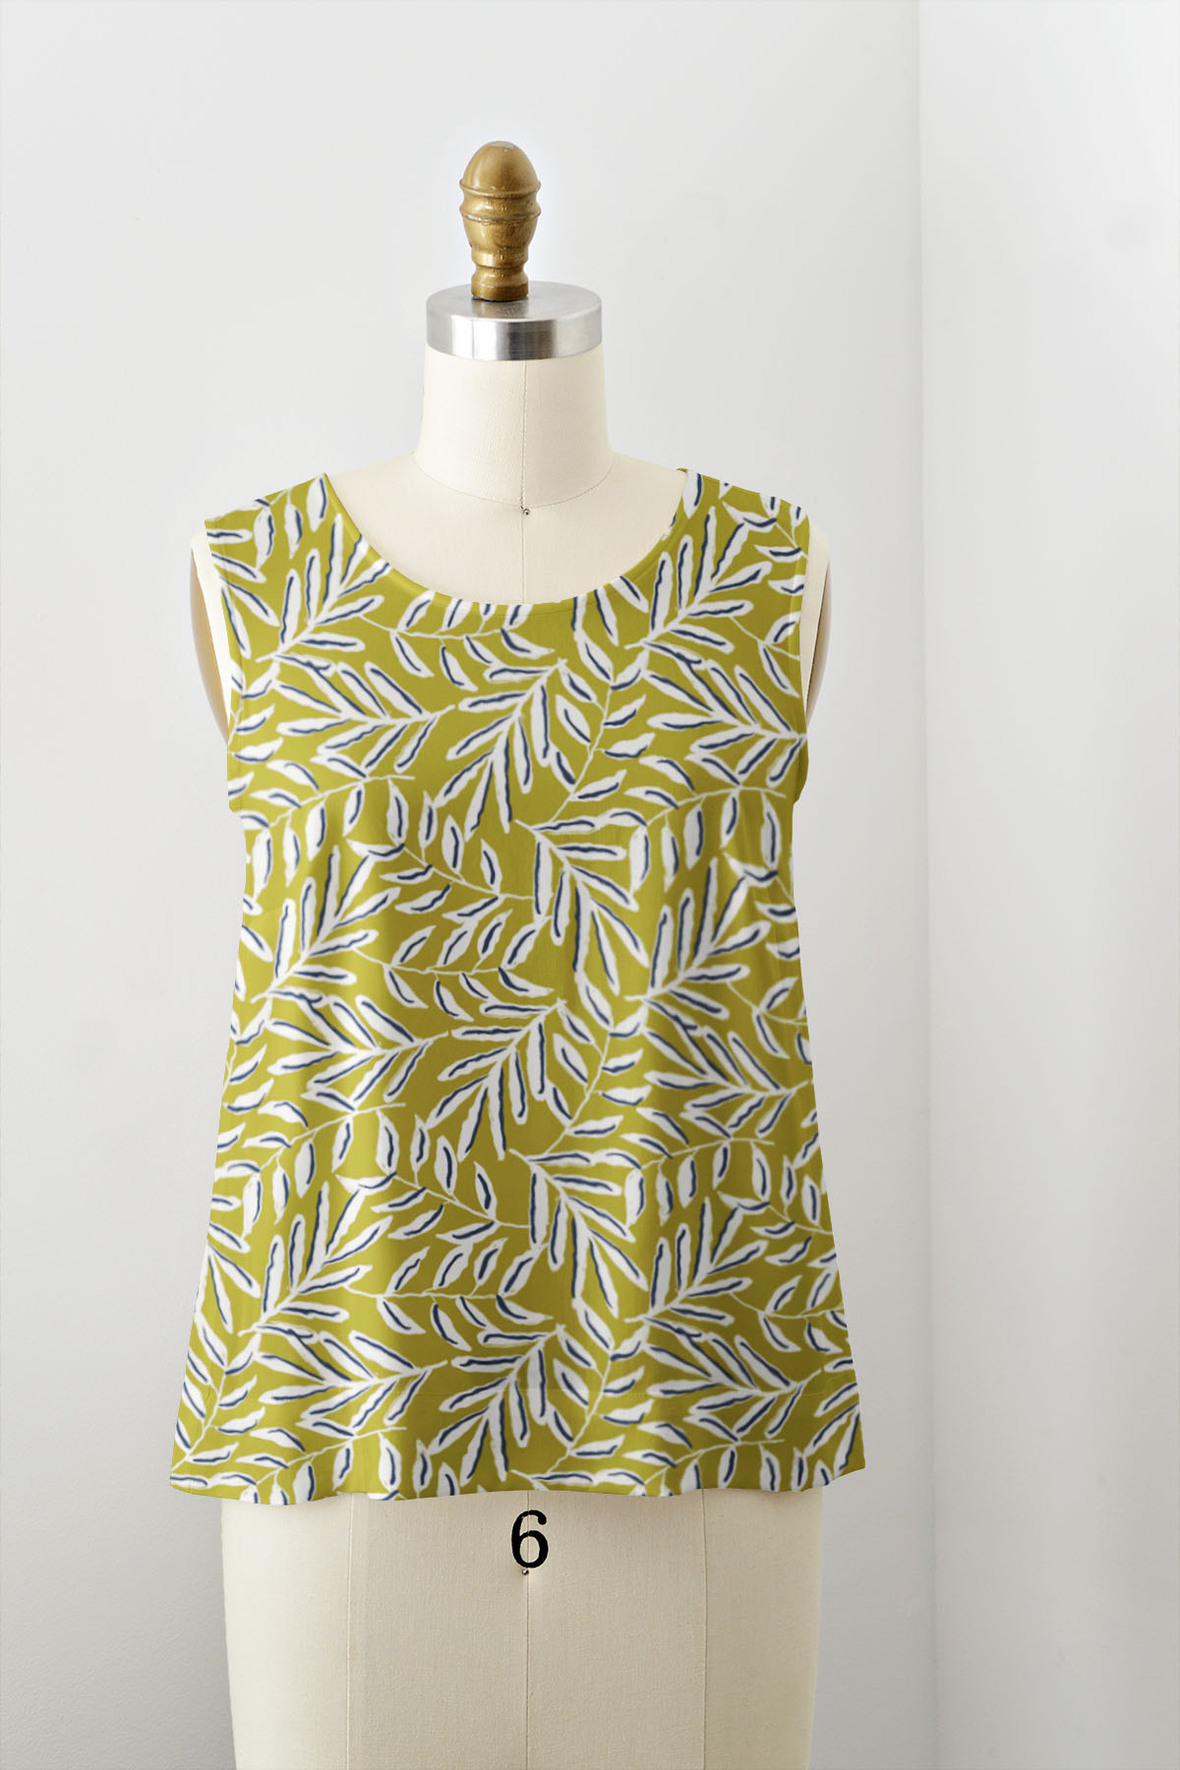 Large Thurloe Square in Citron Green